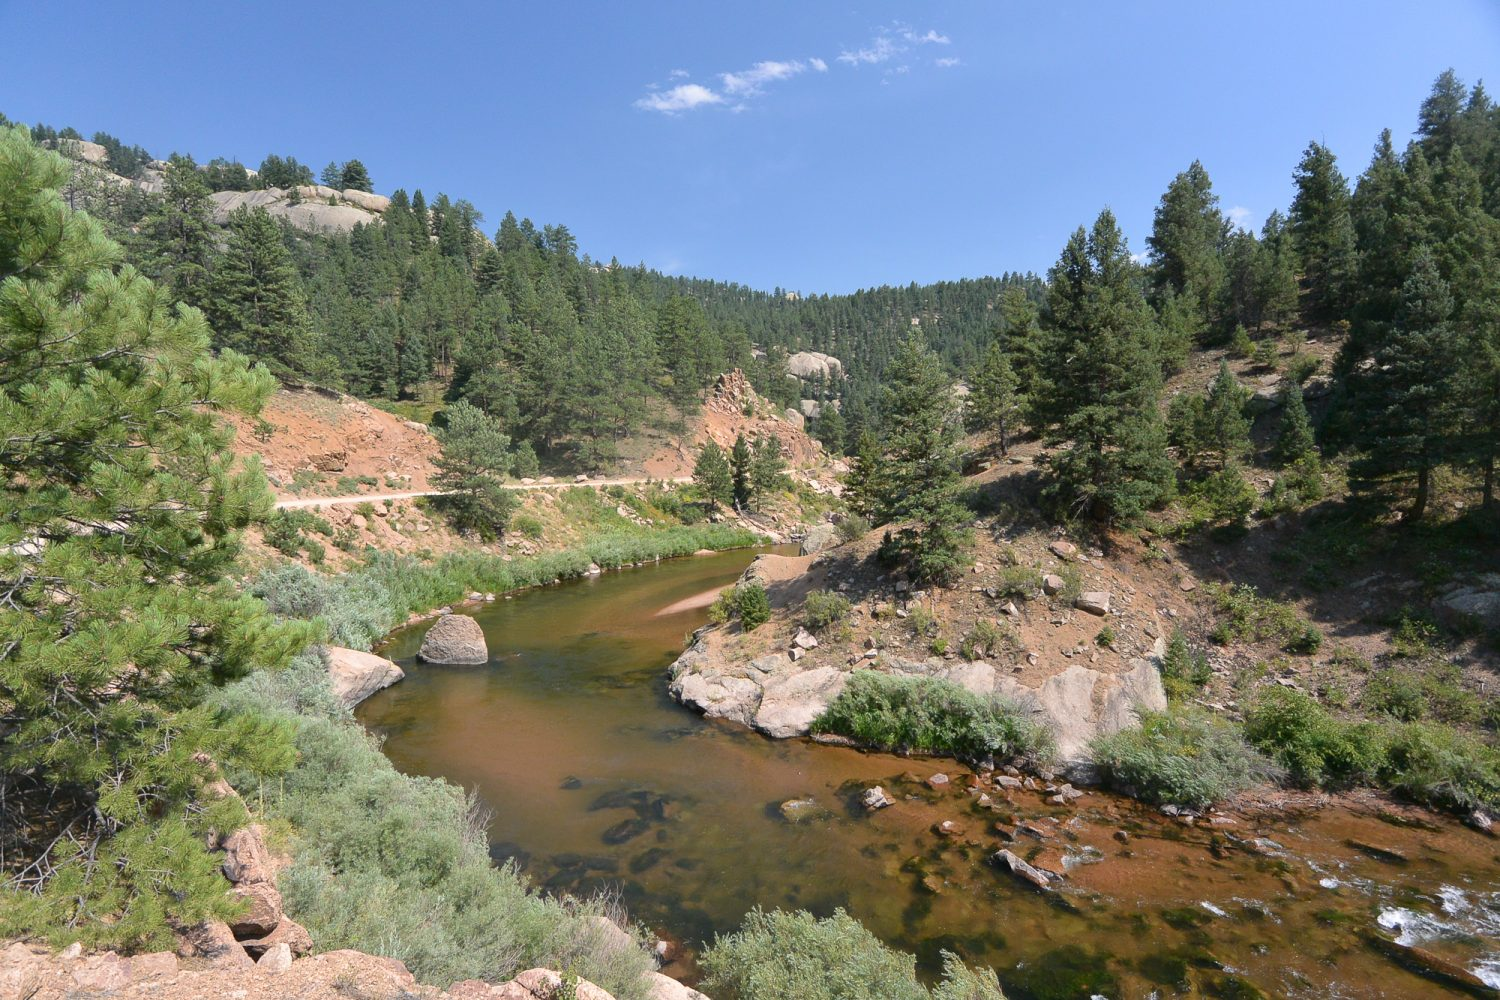 Upper South Platte River with a road